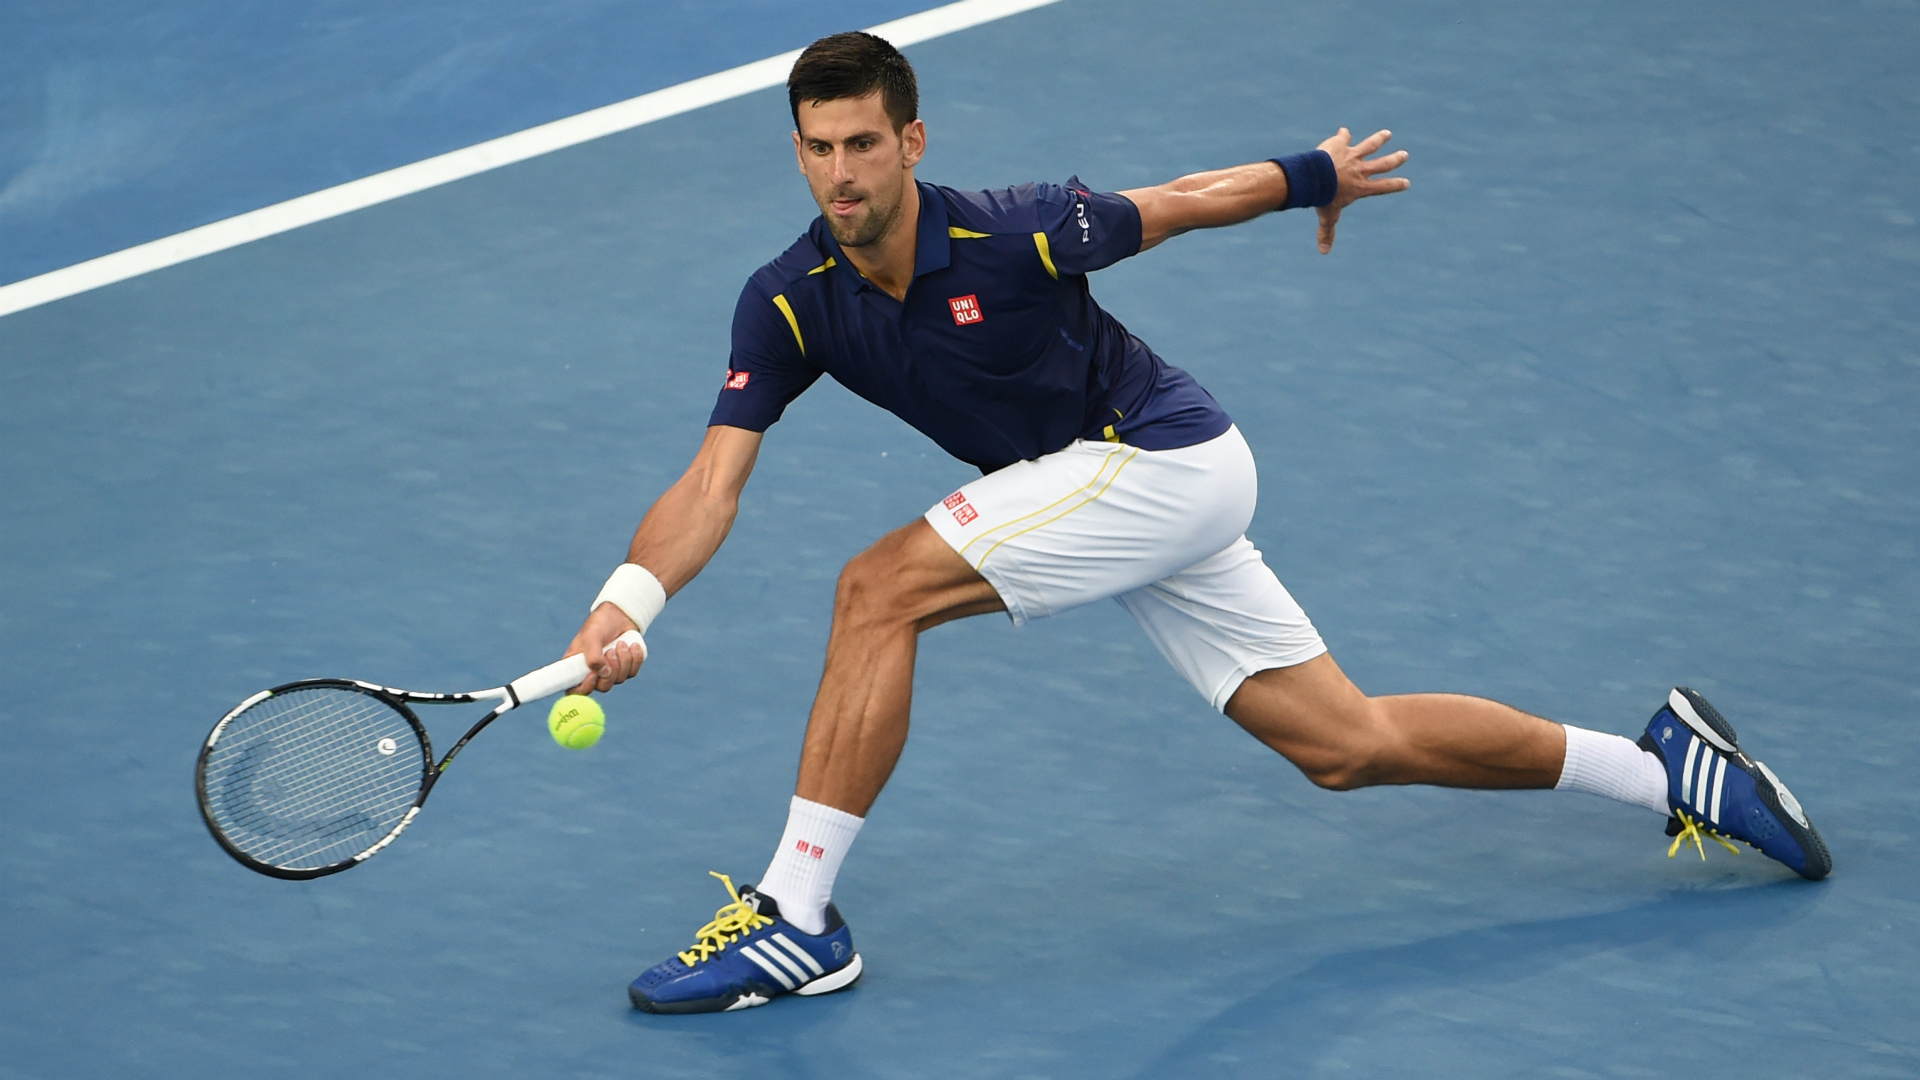 Australian Open 2016 Novak Djokovic unimpressed despite victory